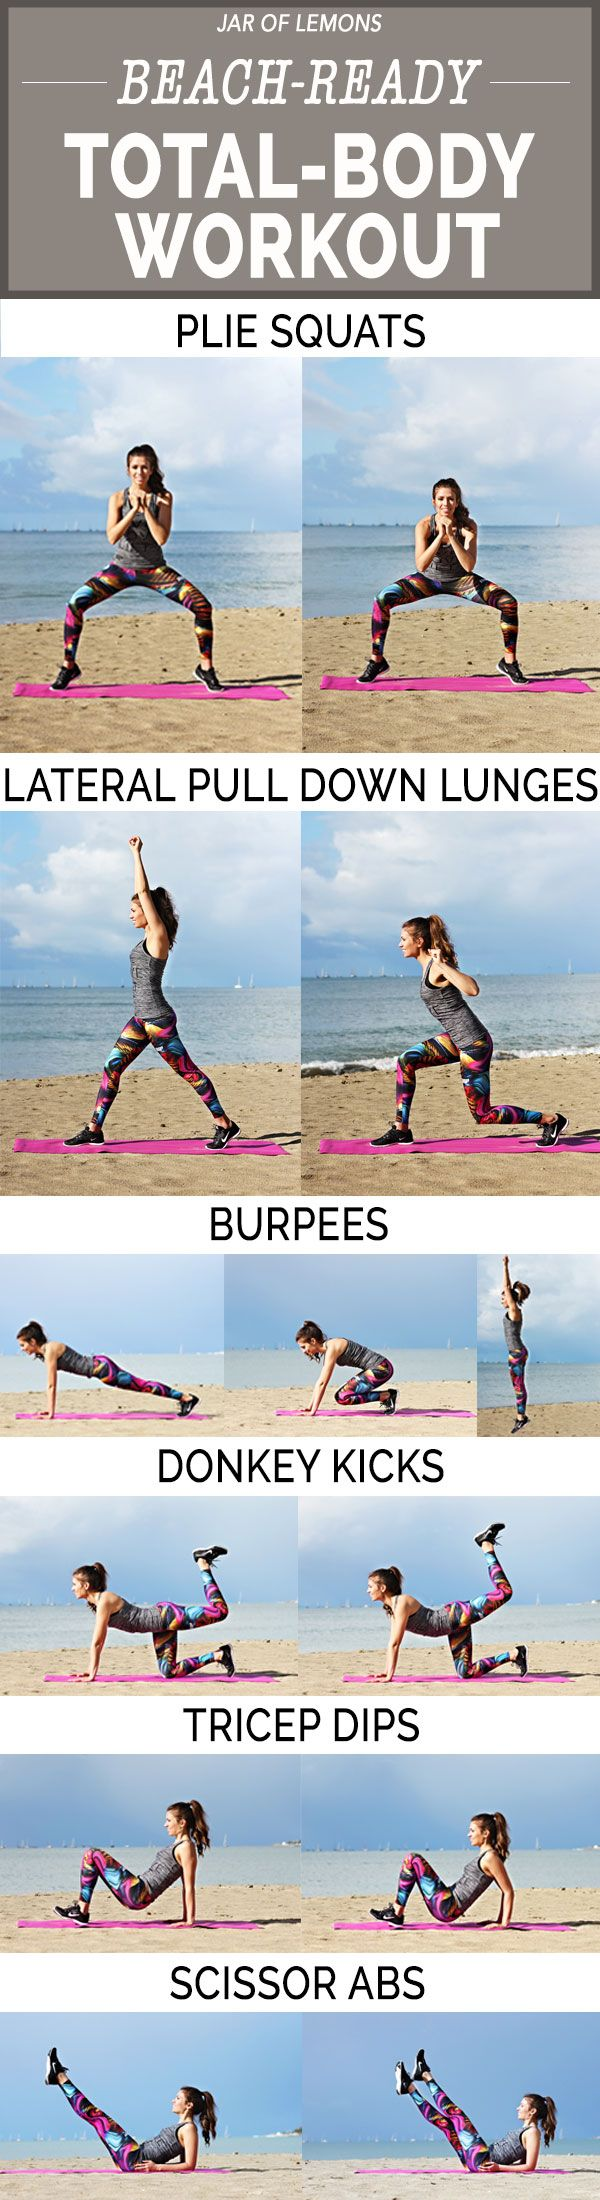 Get beach-ready with this fat burning and toning total-body workout! No equipment needed! :)